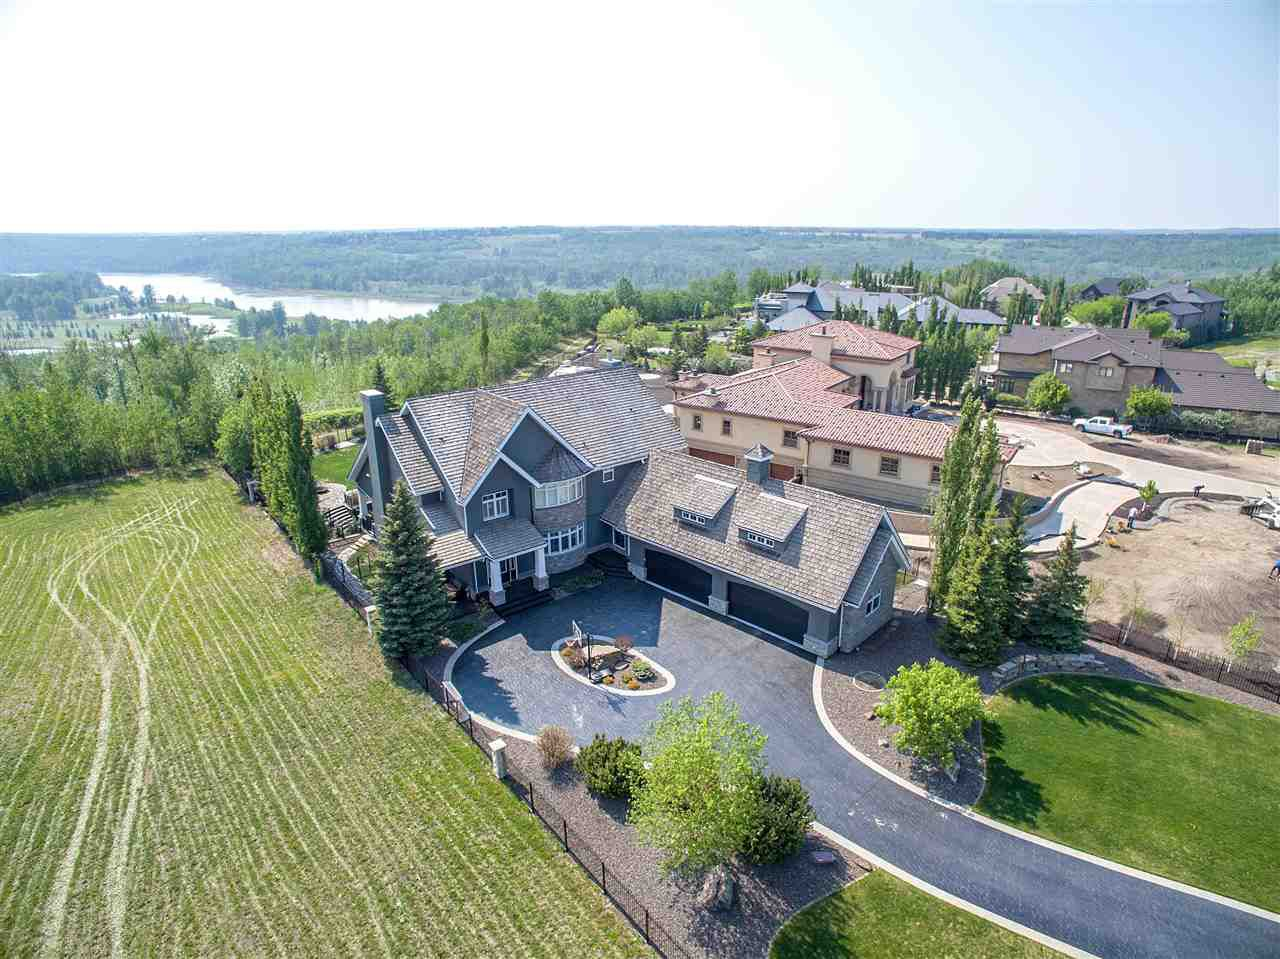 Photo 28: Photos: 60 WINDERMERE Drive in Edmonton: Zone 56 House for sale : MLS®# E4150106